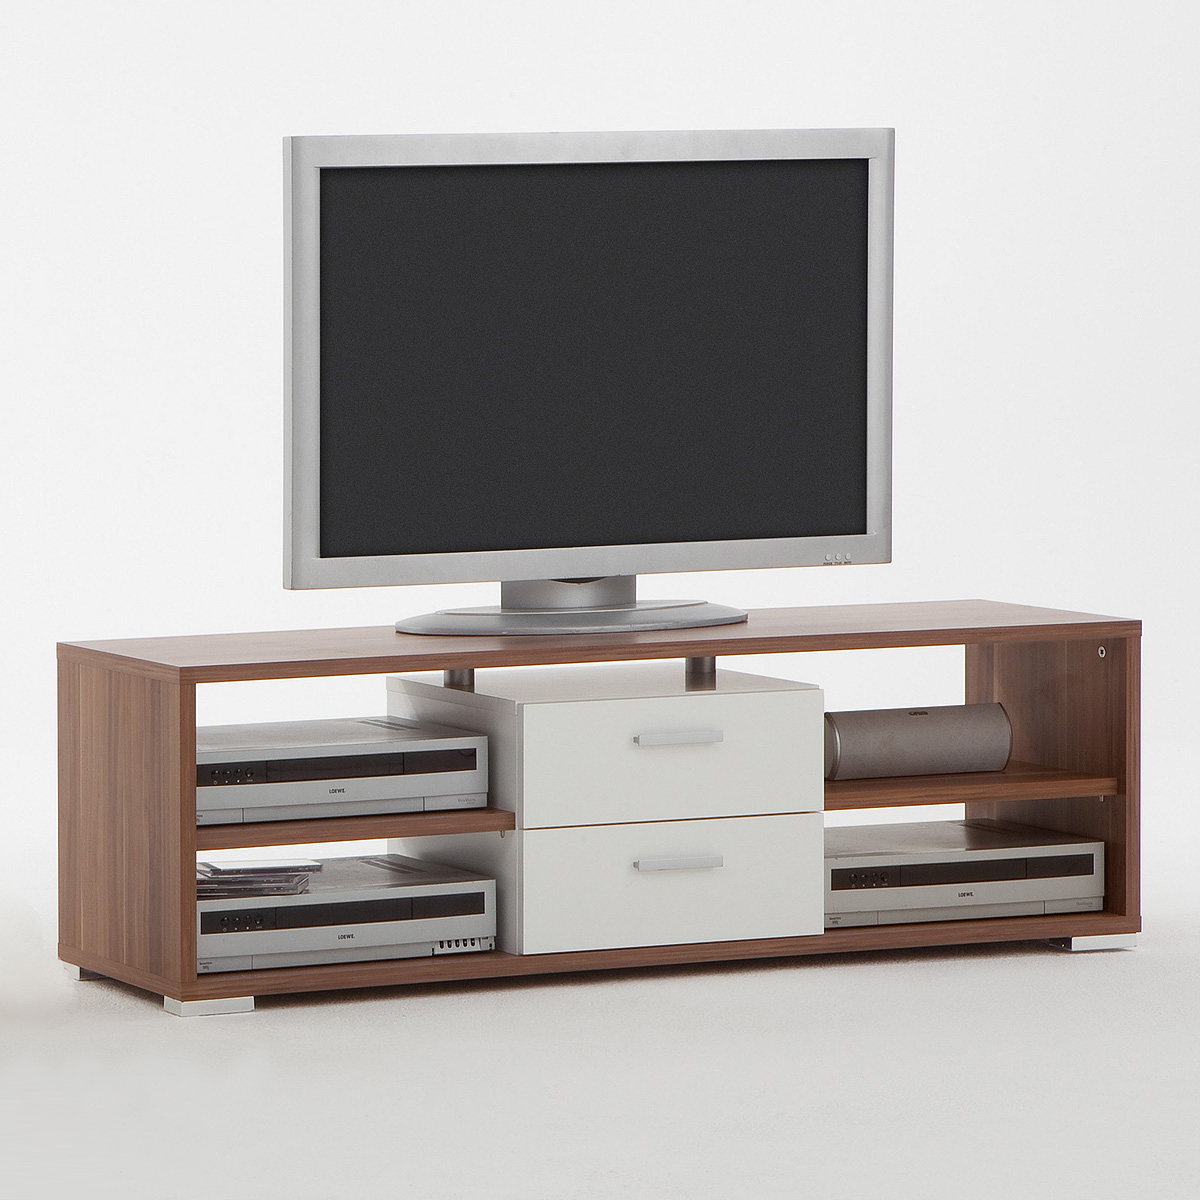 tv lowboard nussbaum inspirierendes design. Black Bedroom Furniture Sets. Home Design Ideas